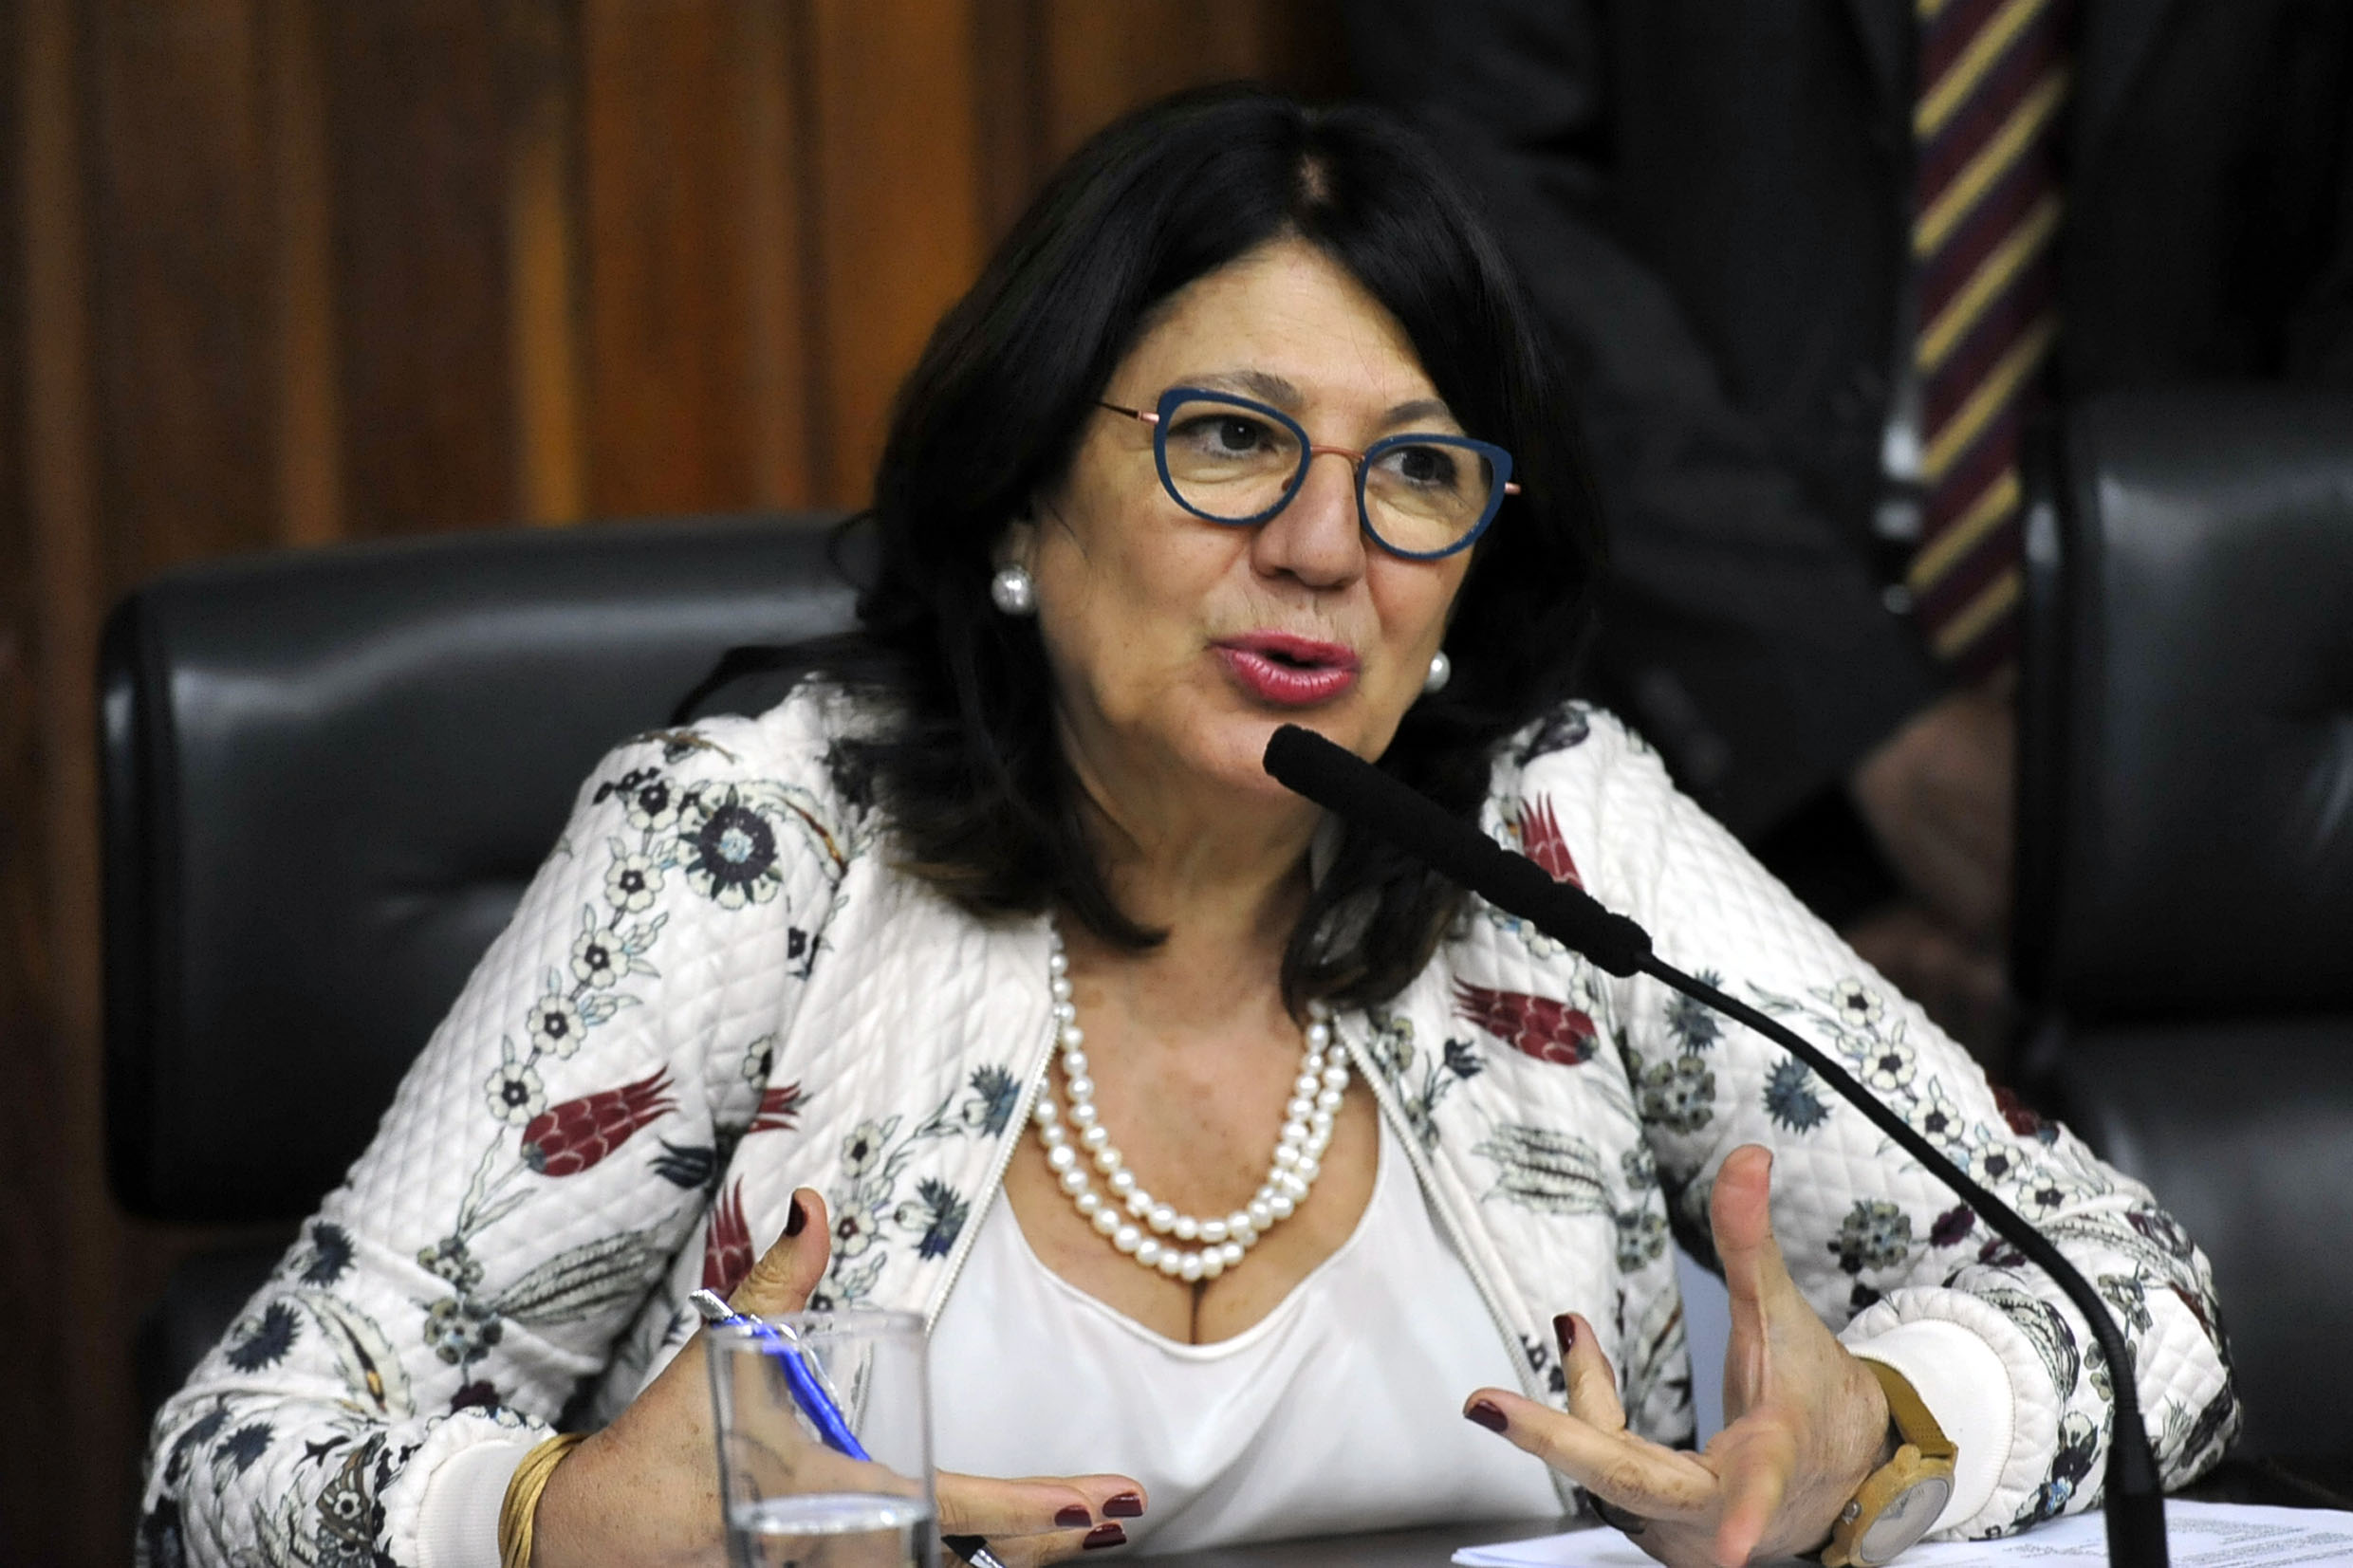 Beth Sahão preside a comissão<a style='float:right' href='https://www3.al.sp.gov.br/repositorio/noticia/N-10-2019/fg242413.jpg' target=_blank><img src='/_img/material-file-download-white.png' width='14px' alt='Clique para baixar a imagem'></a>